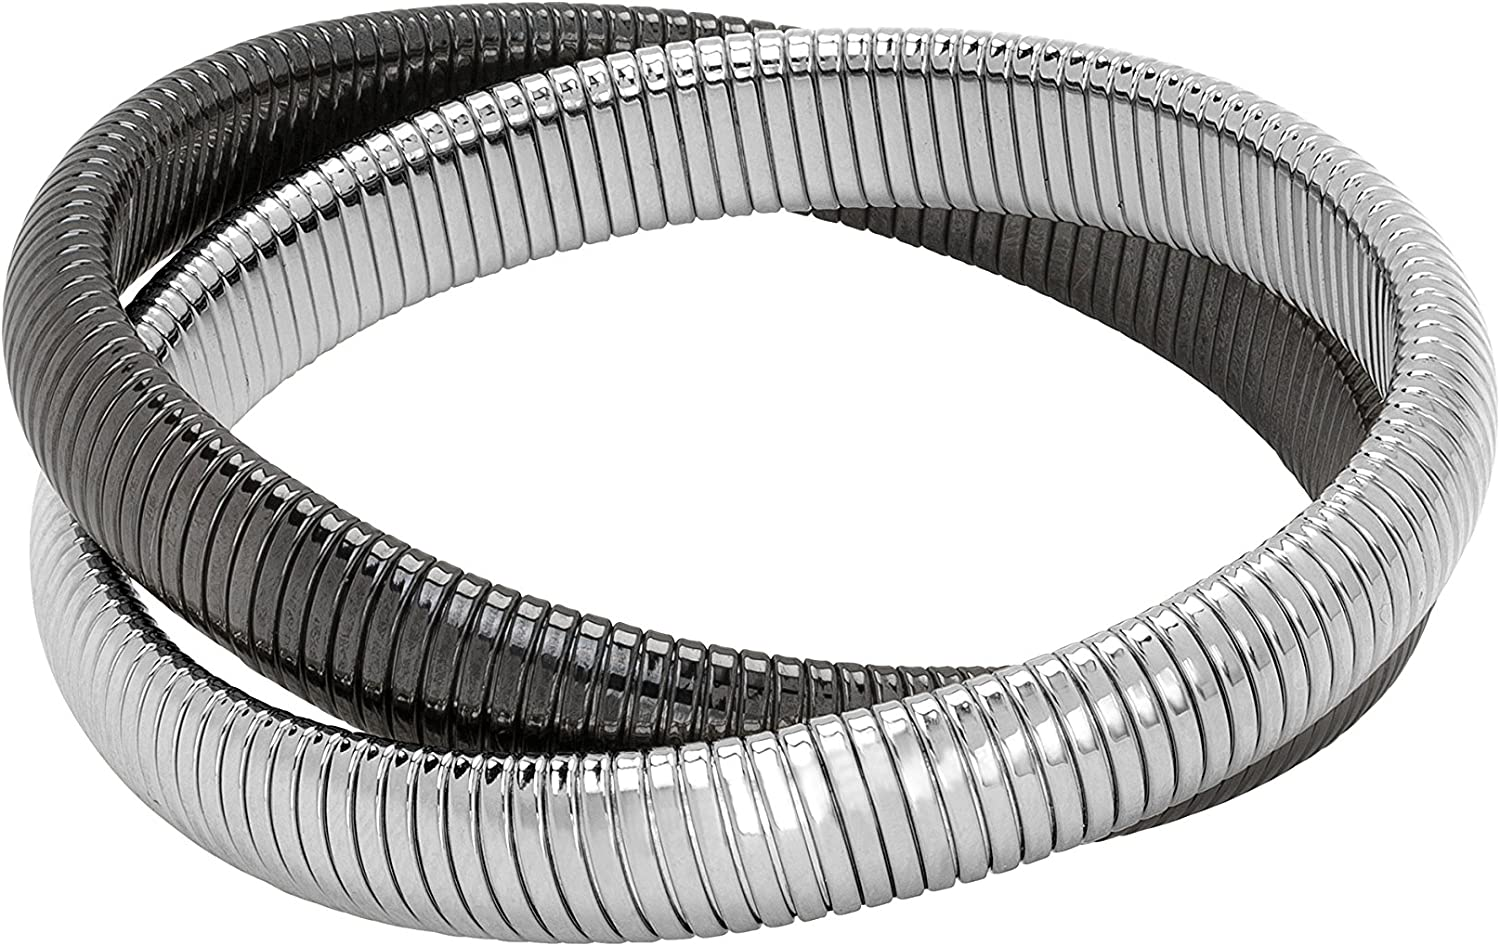 JANIS At the price of surprise Direct sale of manufacturer BY SAVITT High Polished Bracelet Double Cobra